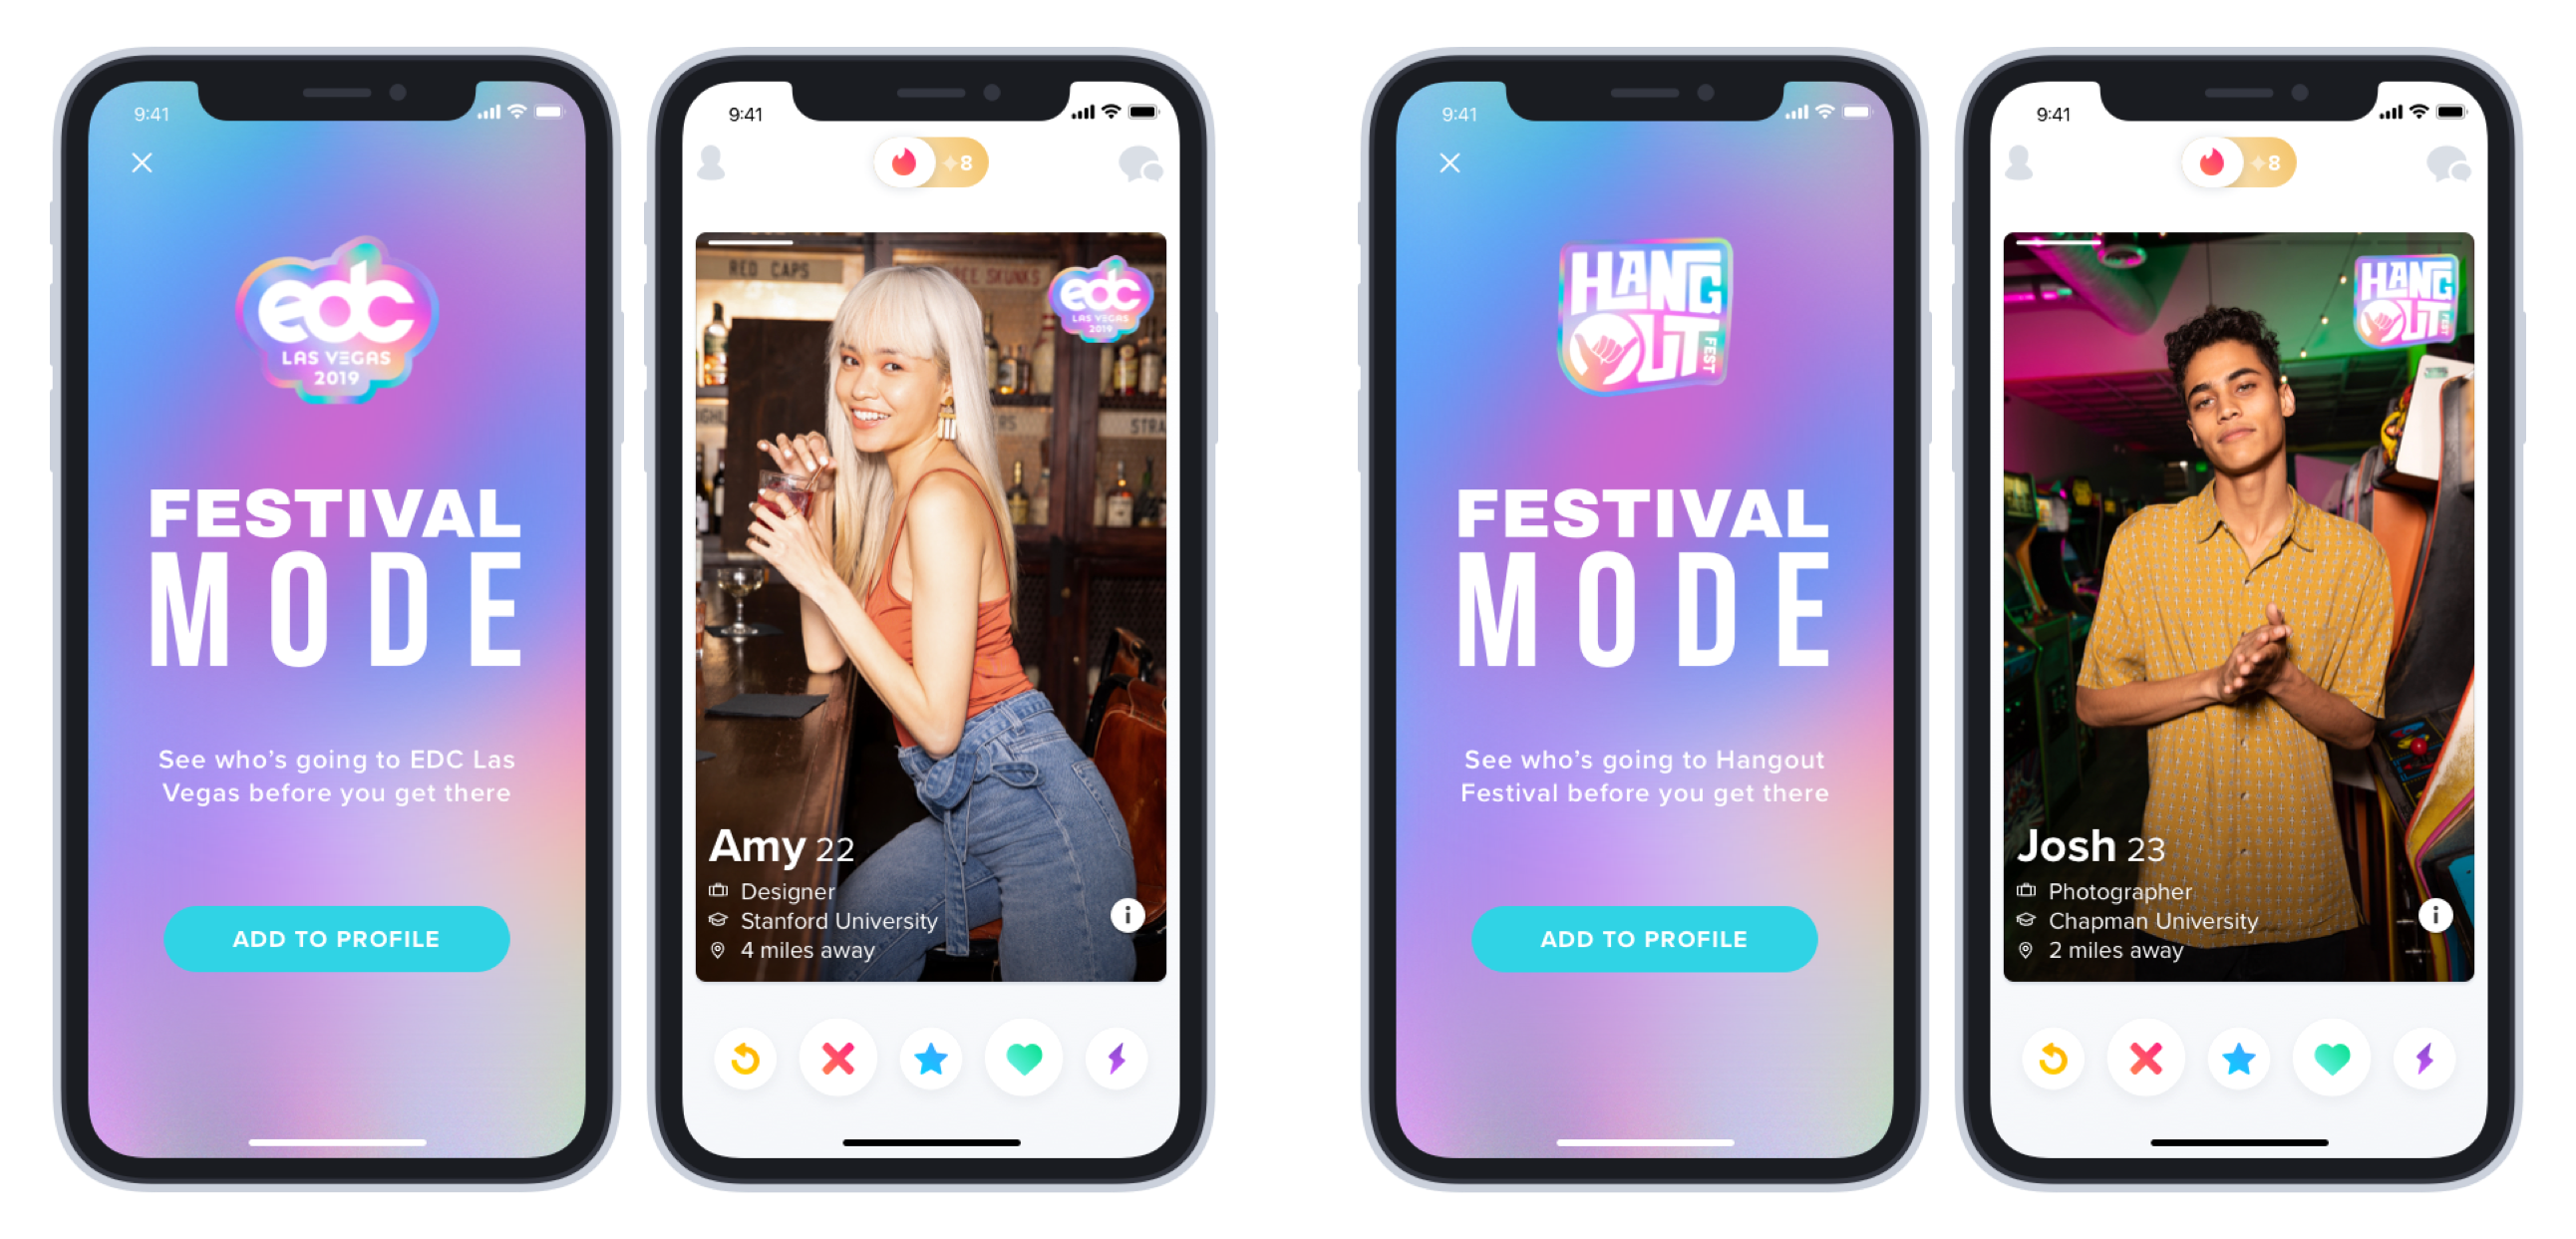 Tinder Introduces Festival Mode